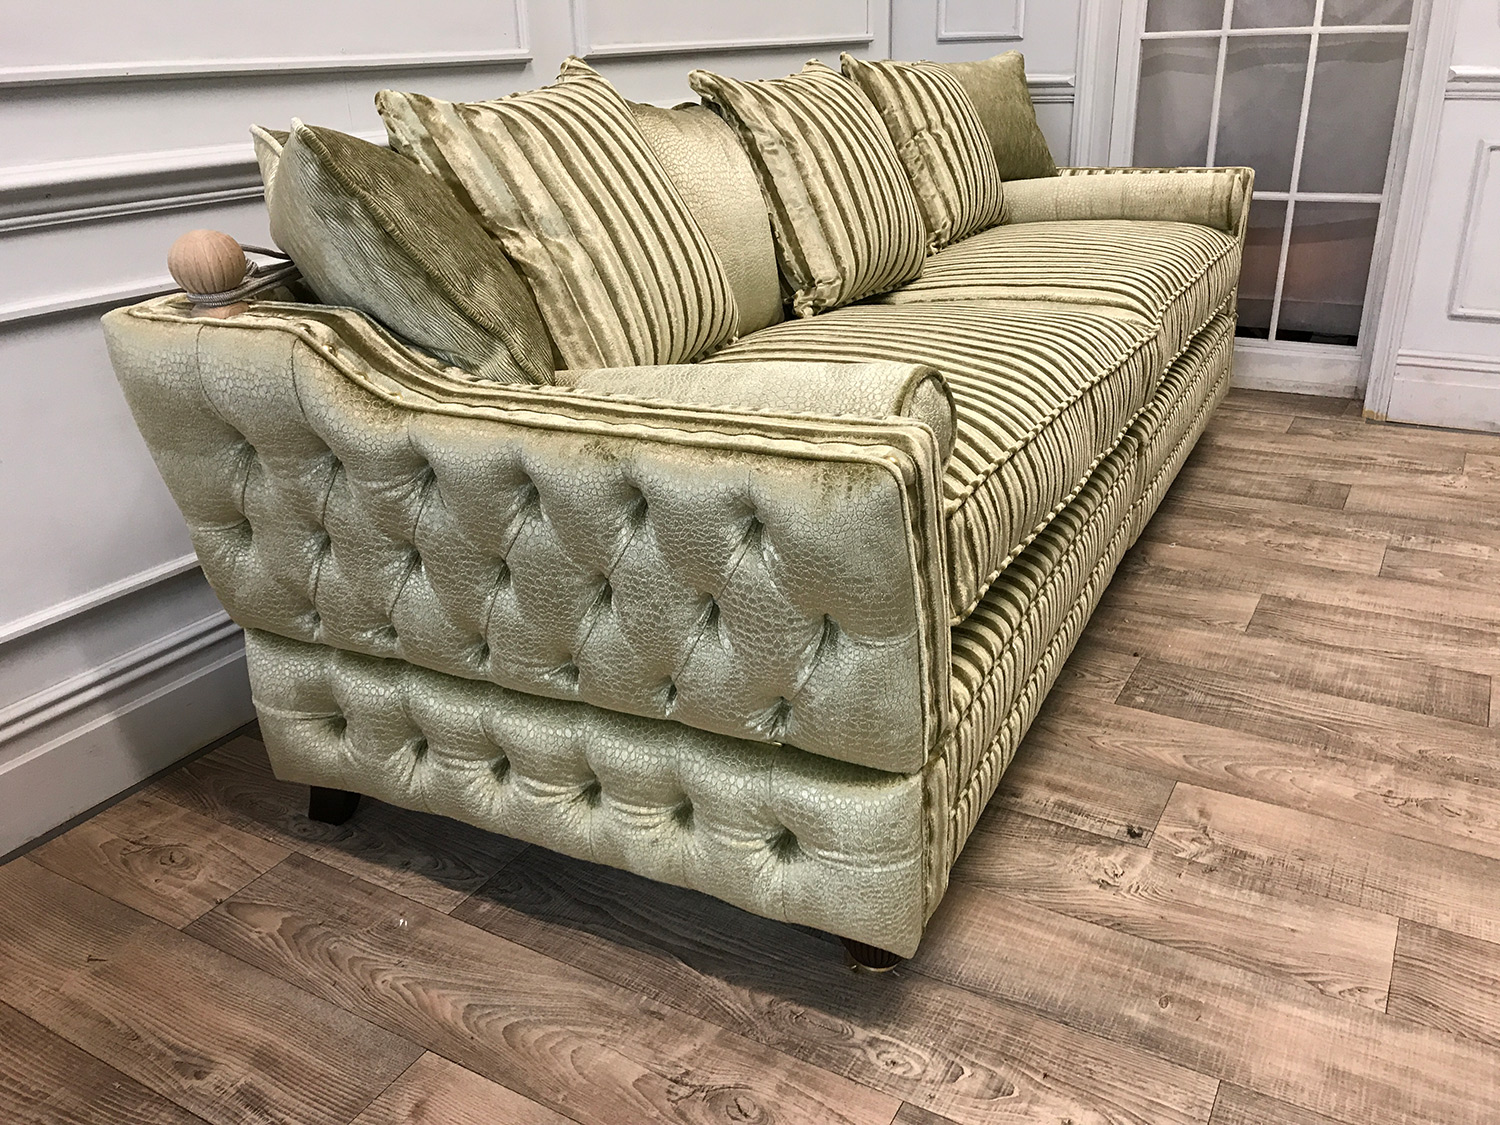 Bespoke Gold And Cream Sofa With Matching Chair Amp Footstool